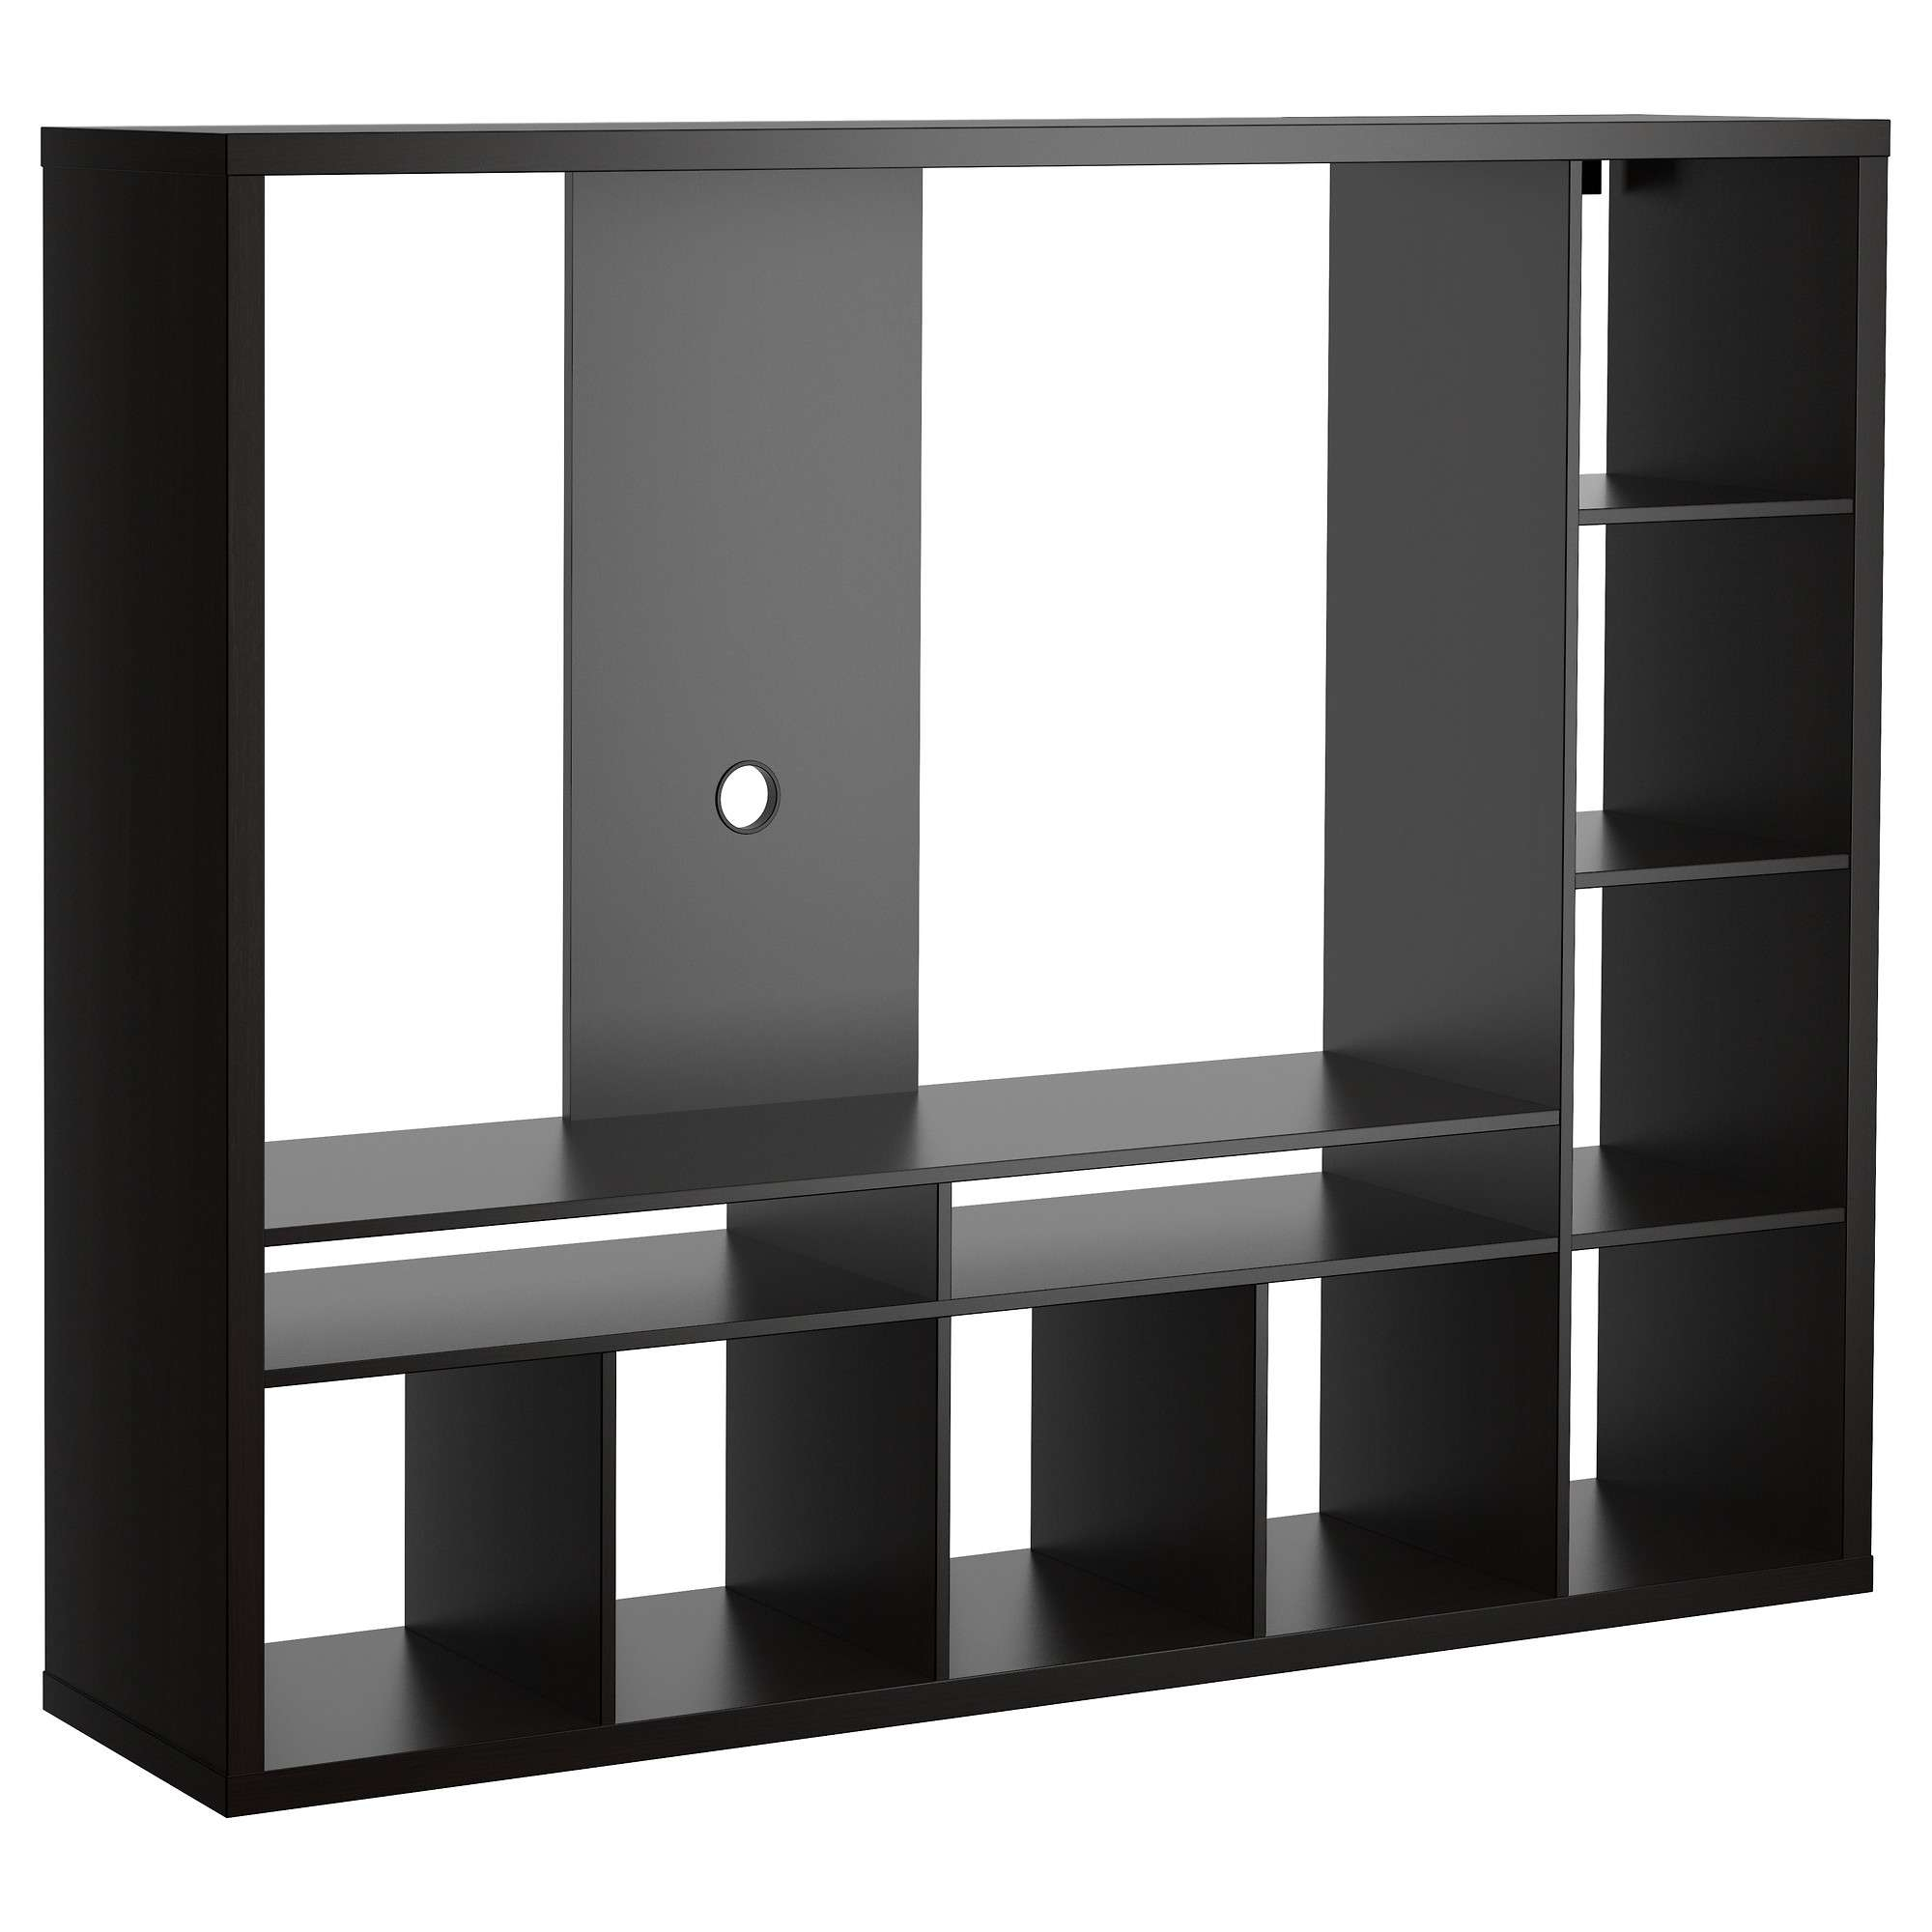 Lappland Tv Storage Unit – Black Brown – Ikea For Yellow Tv Stands Ikea (View 8 of 20)